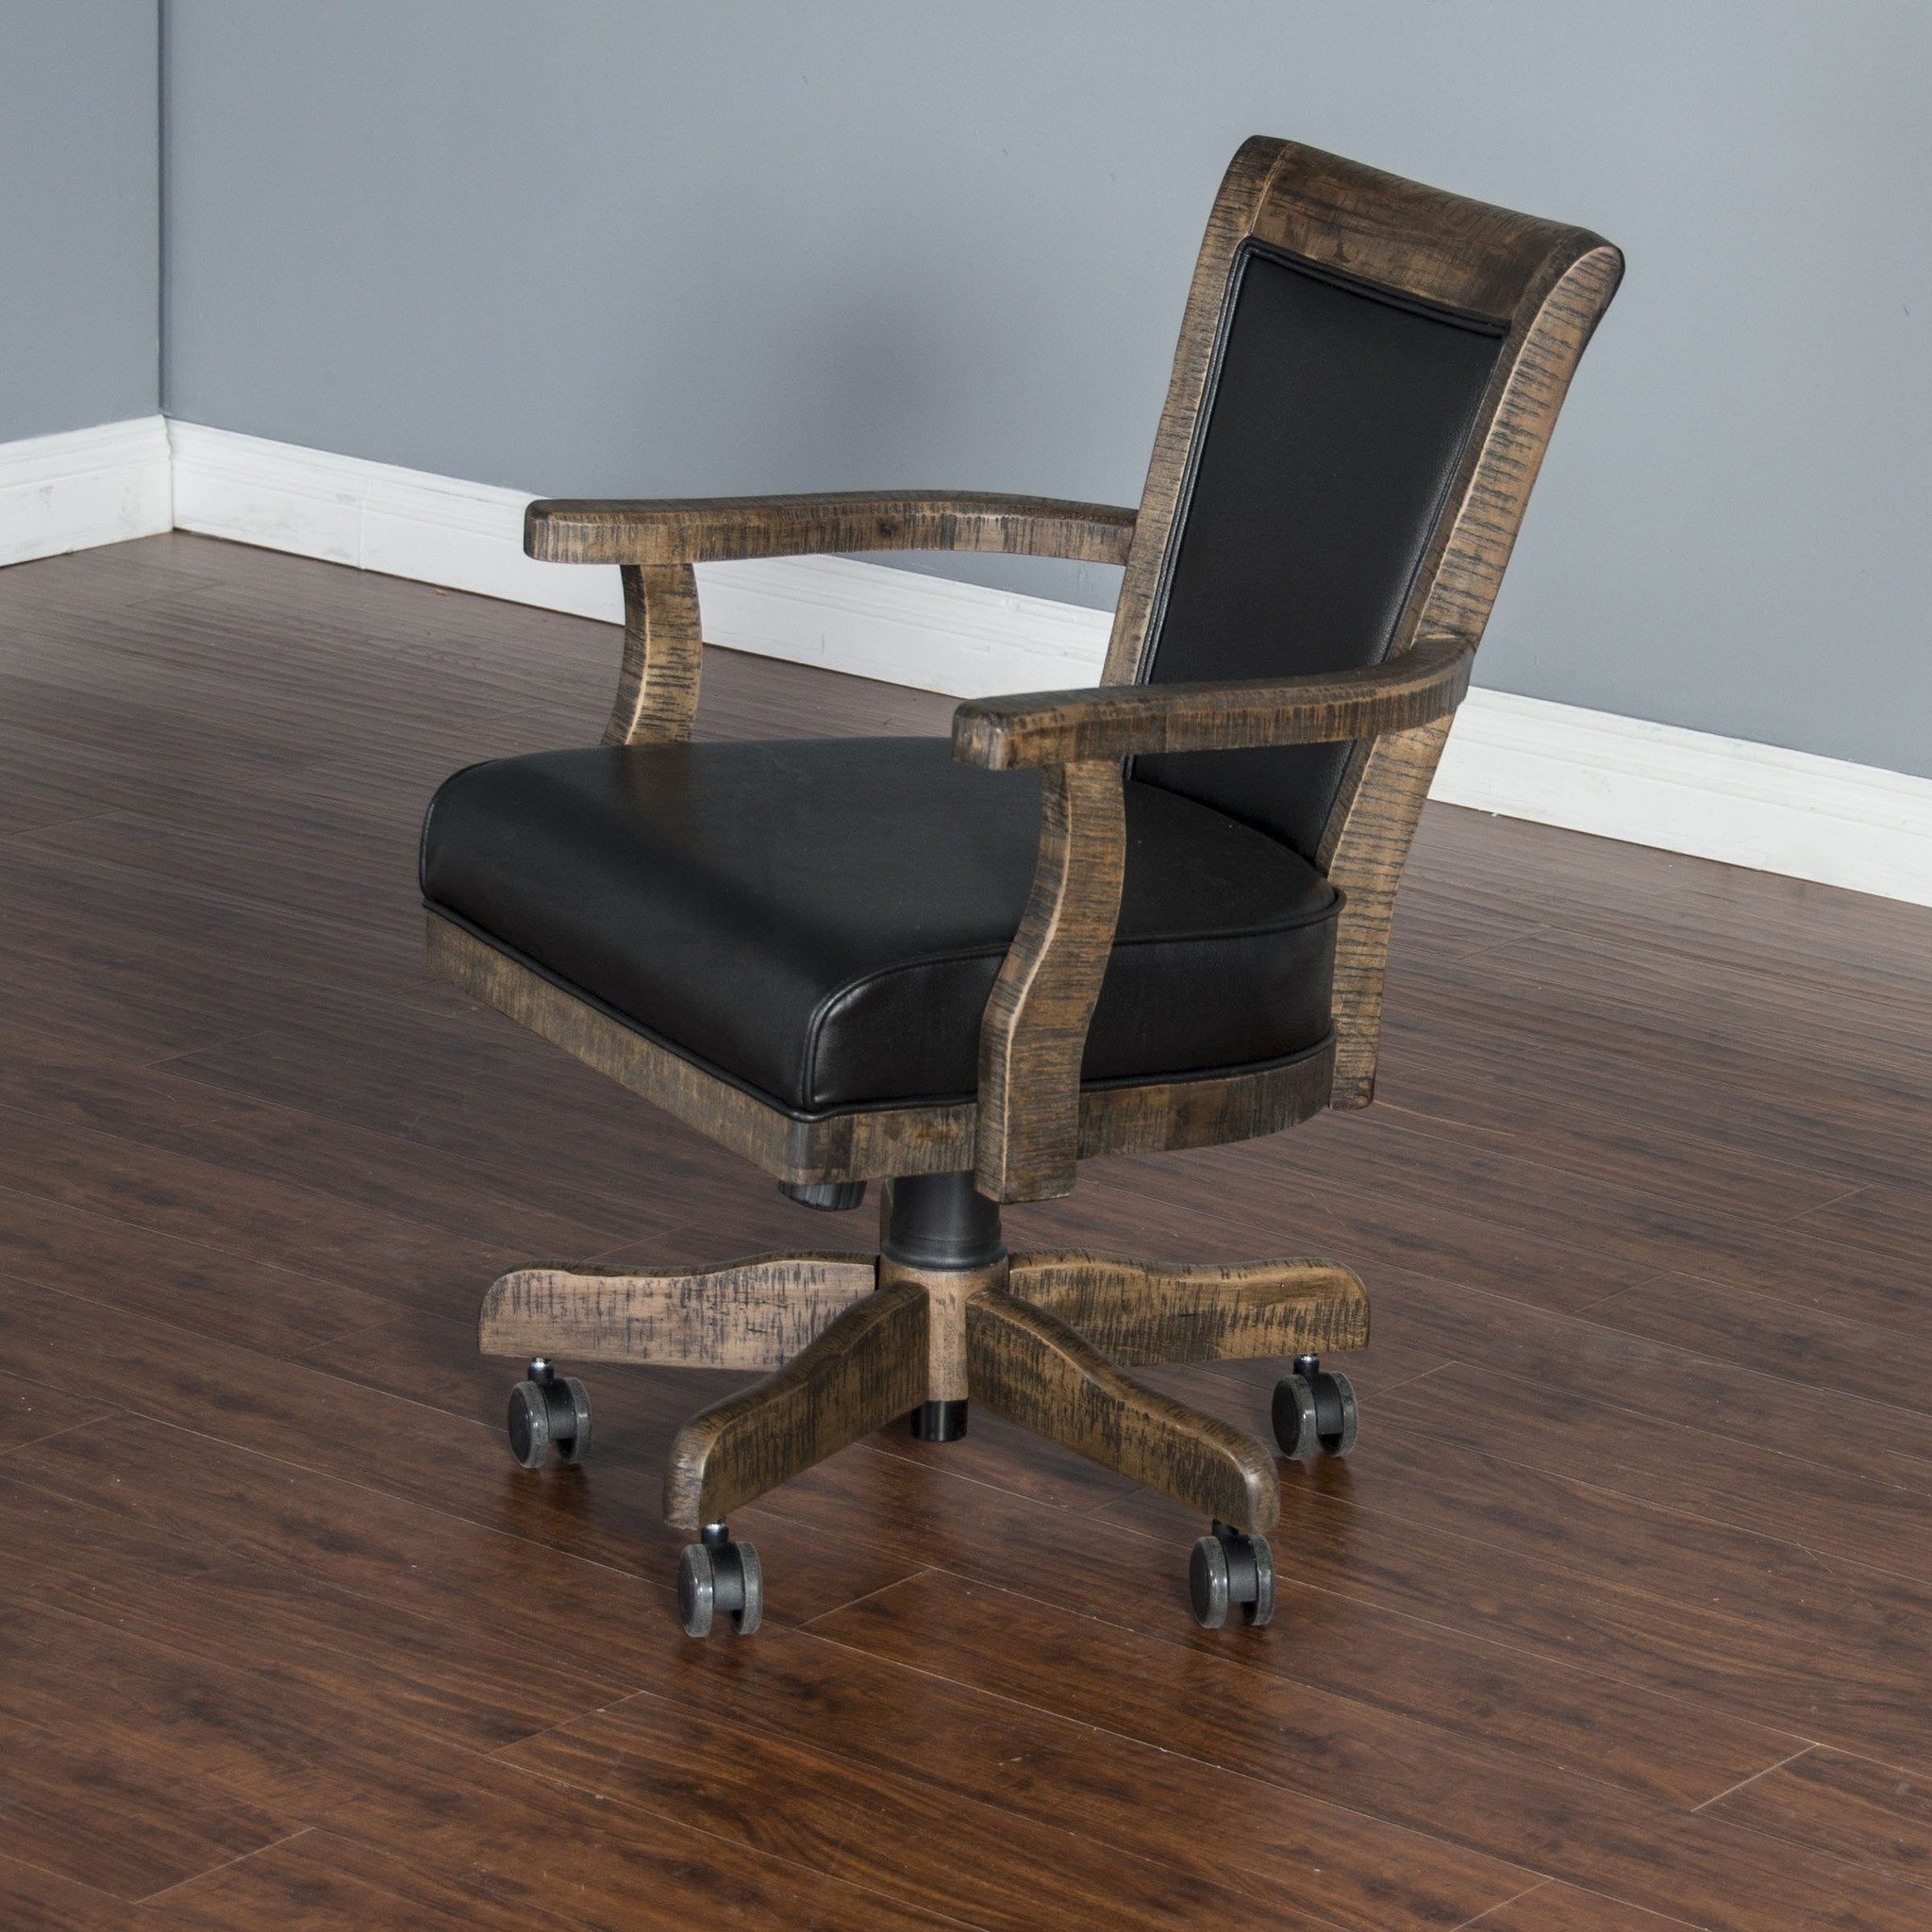 Poker Chair #15 - ... Poker Chair Set: 4 Or 6 Tobacco Leaf Poker Chairs By Sunny Designs -  Americana